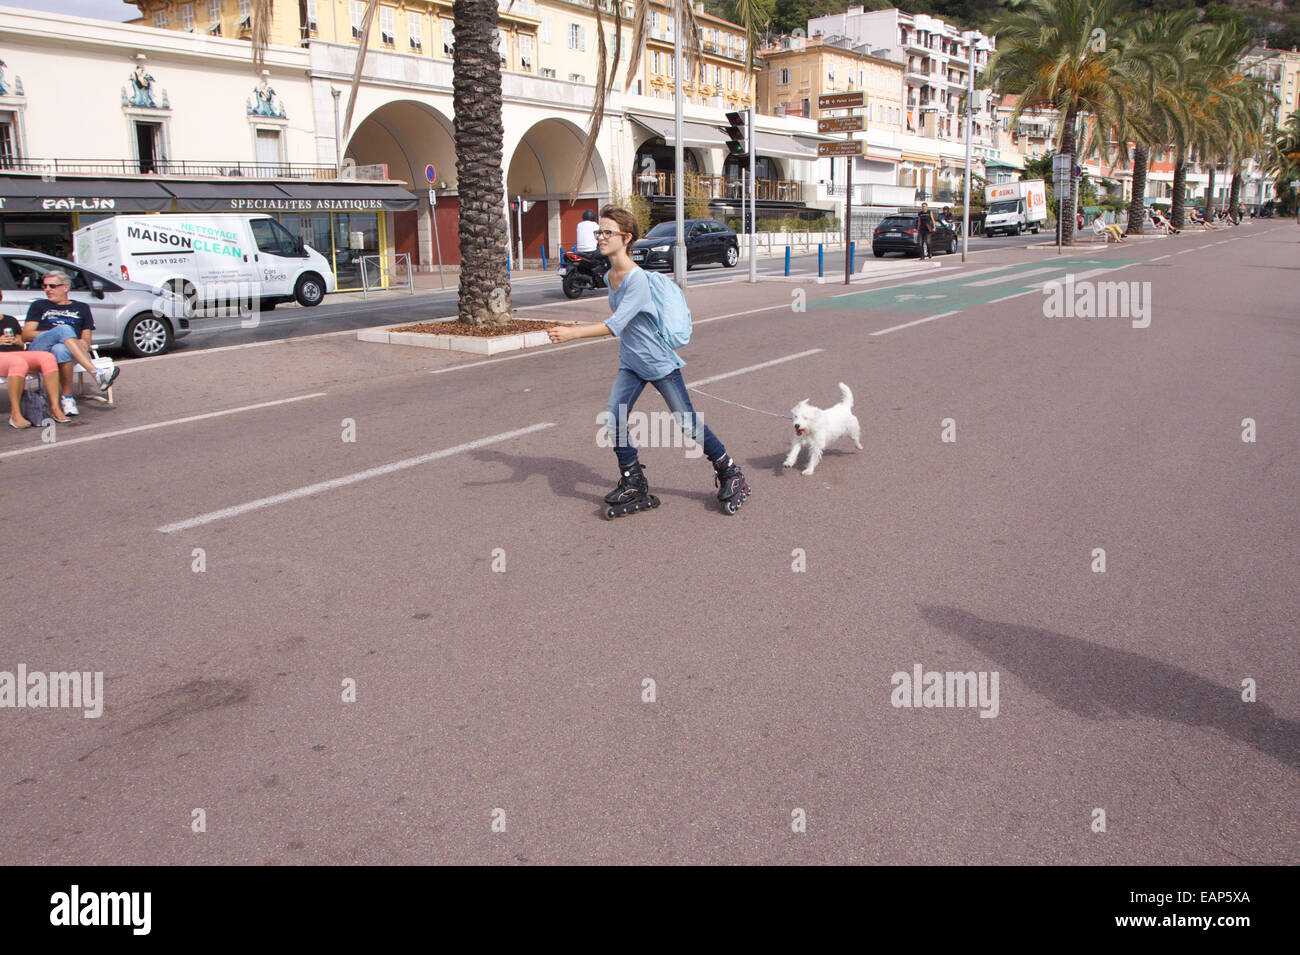 A lady rollerblading with her dog on the seafront in Nice, South of France - Stock Image